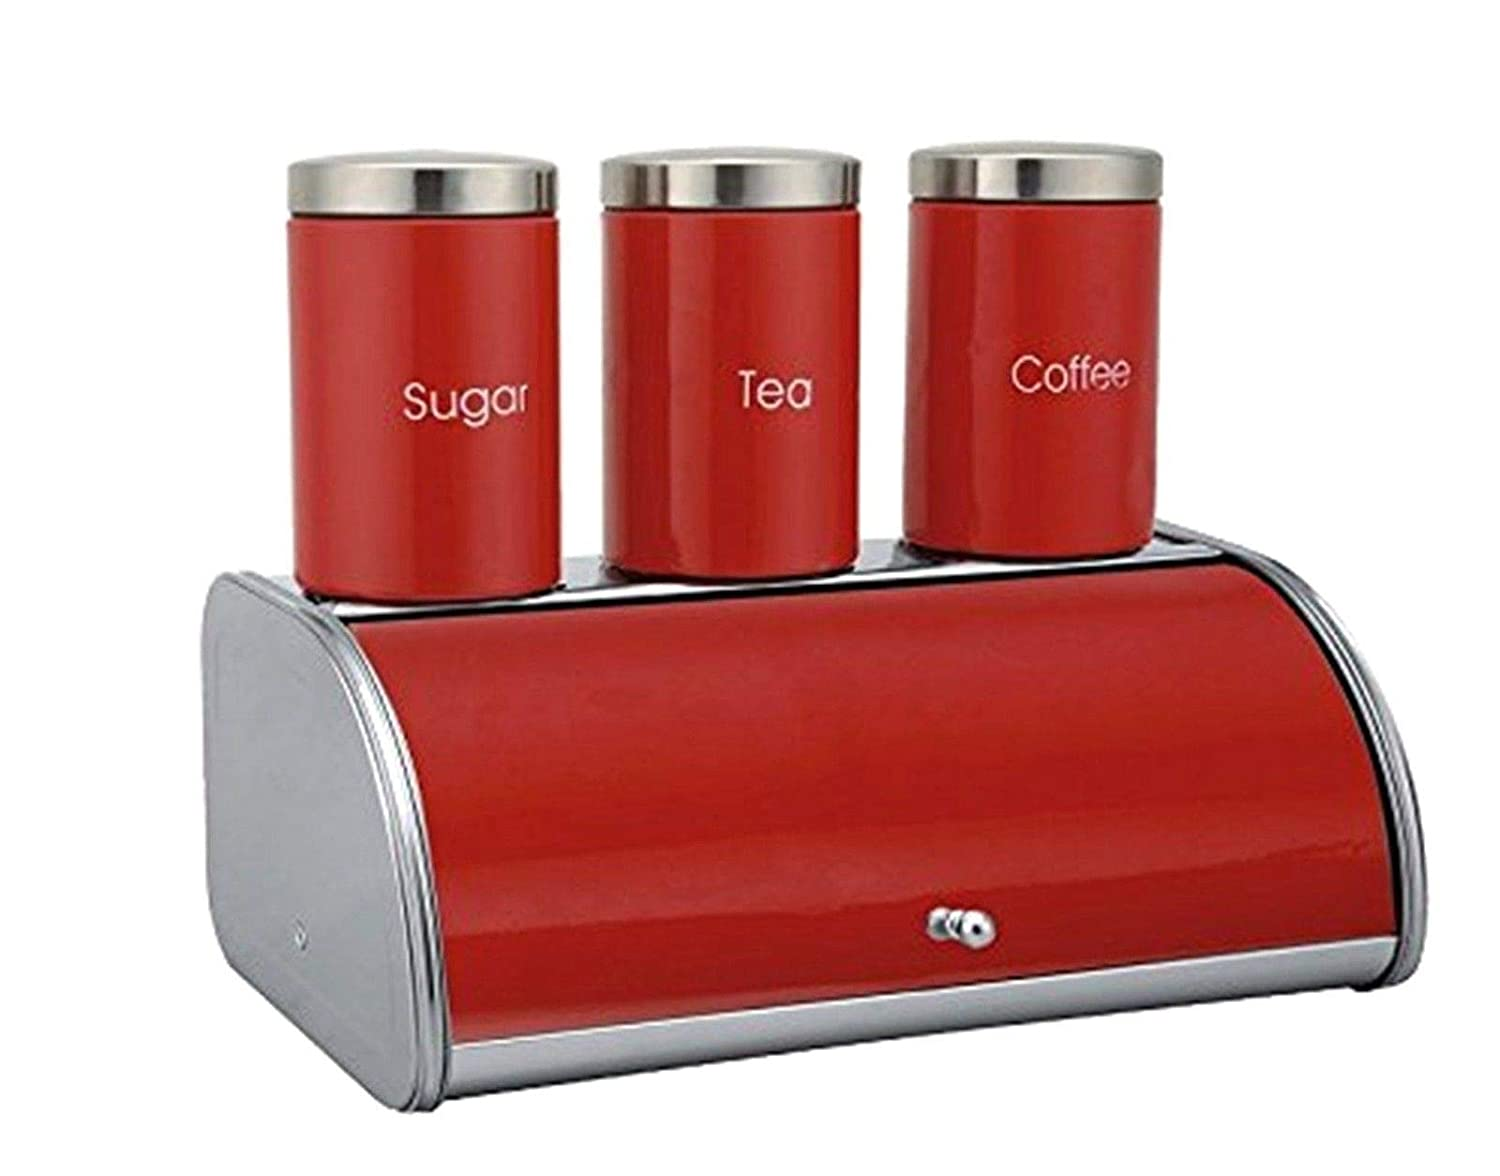 4pc Stainless Steel Large Bread Bin, Tea, Coffee & Sugar Storage Canisters Jar Set Elegant Metallic Roll Top Bread Bin & Caddy Tins Canister Pots Contemporary Home And Kitchen Storage Set Countertop Decoration Gift – 4 Colors (Black) Bargains Hut